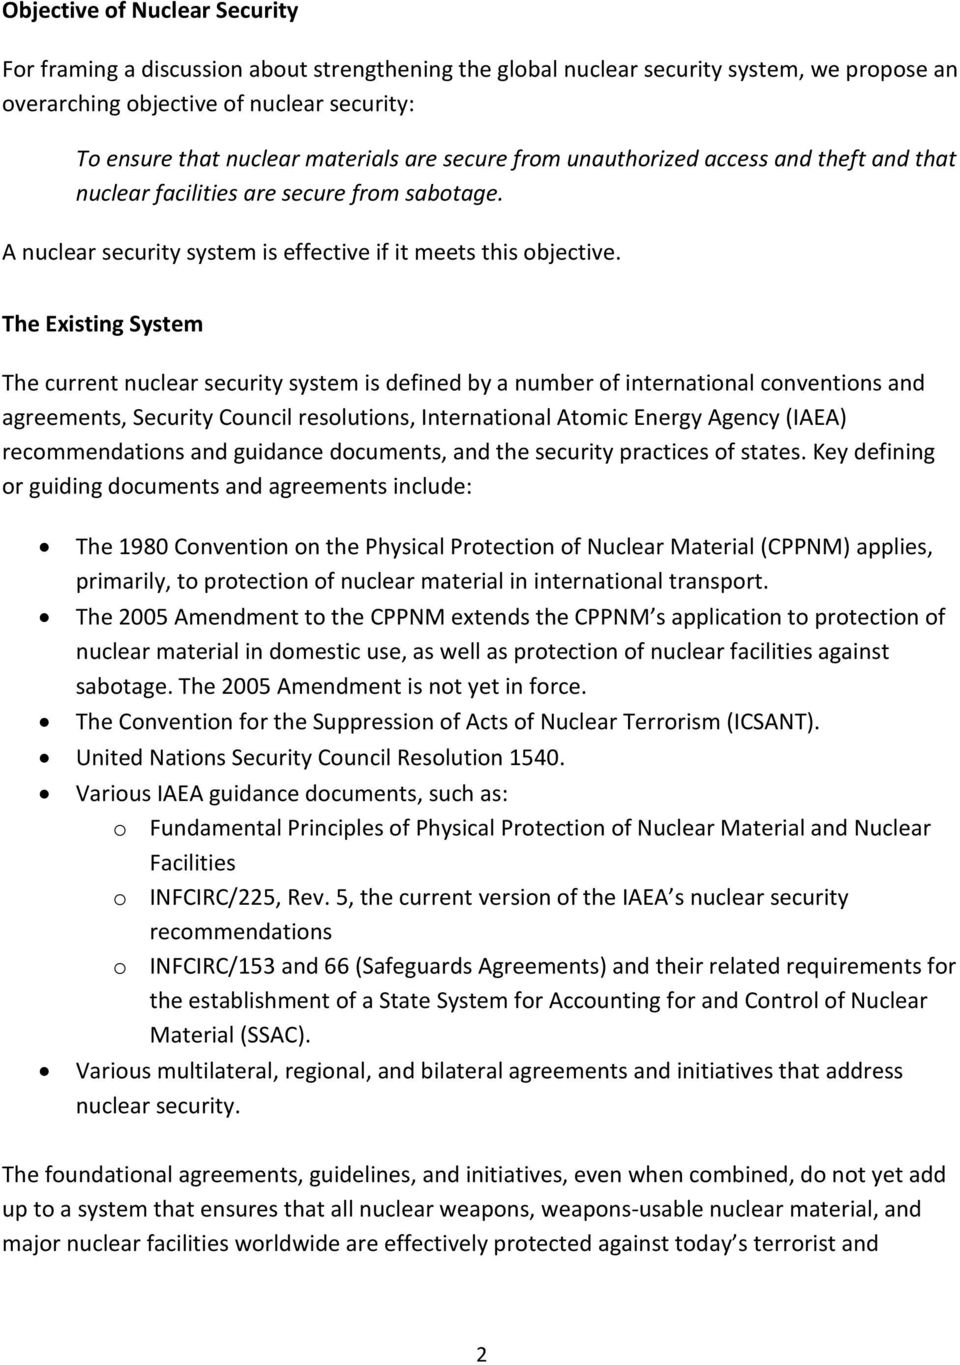 The Existing System The current nuclear security system is defined by a number of international conventions and agreements, Security Council resolutions, International Atomic Energy Agency (IAEA)